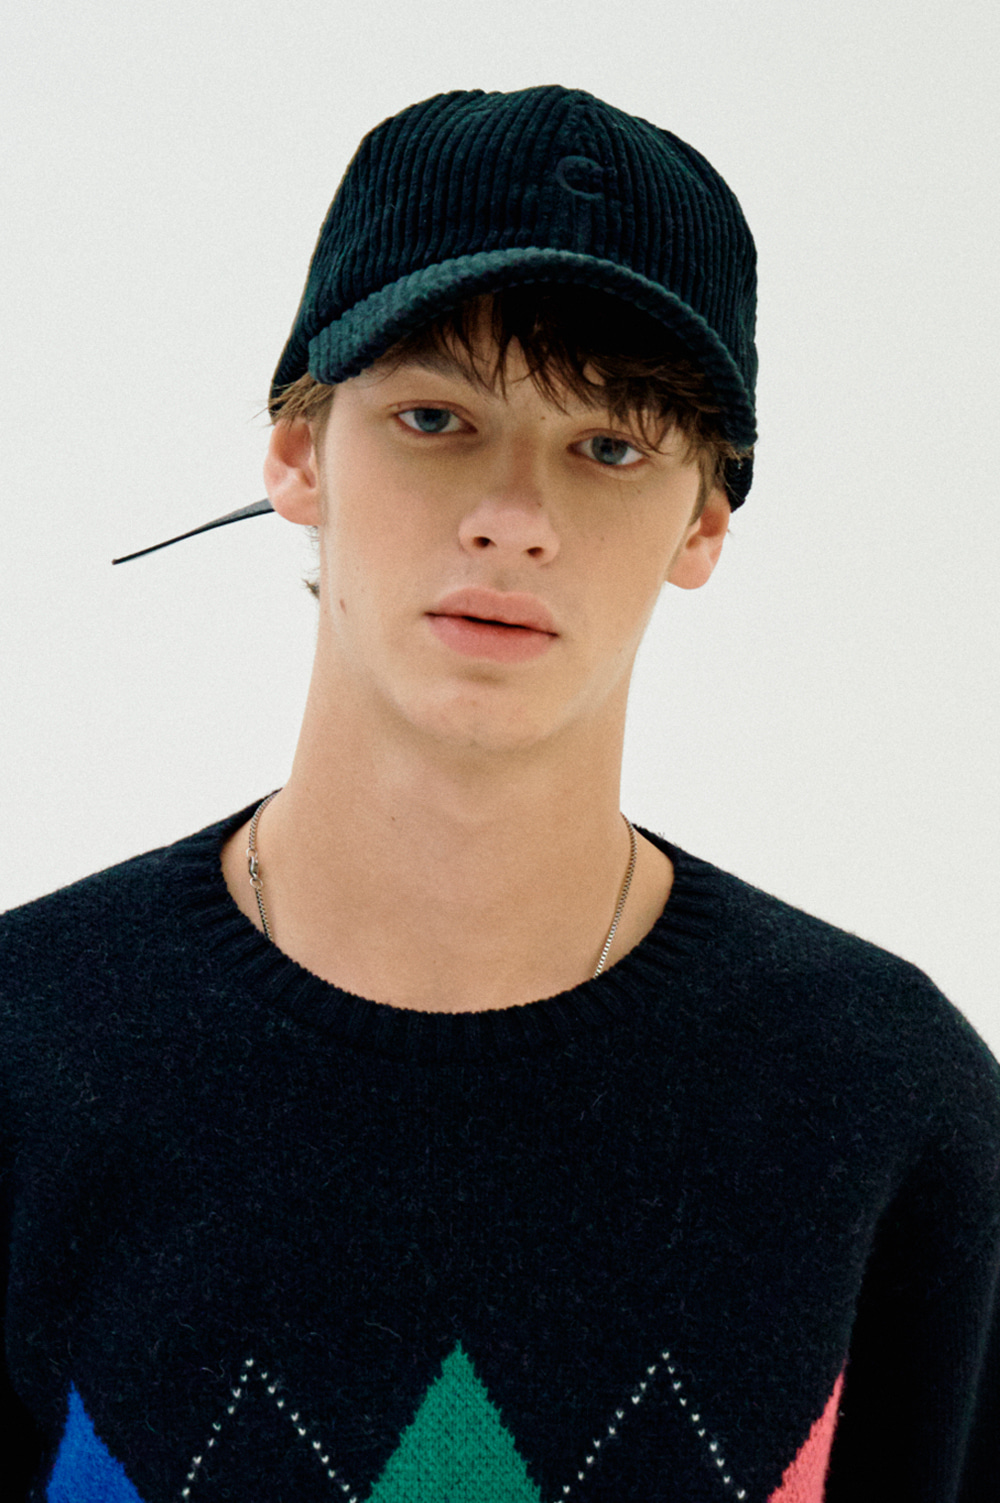 Basic Fit Ball Cap (Corduroy Black)